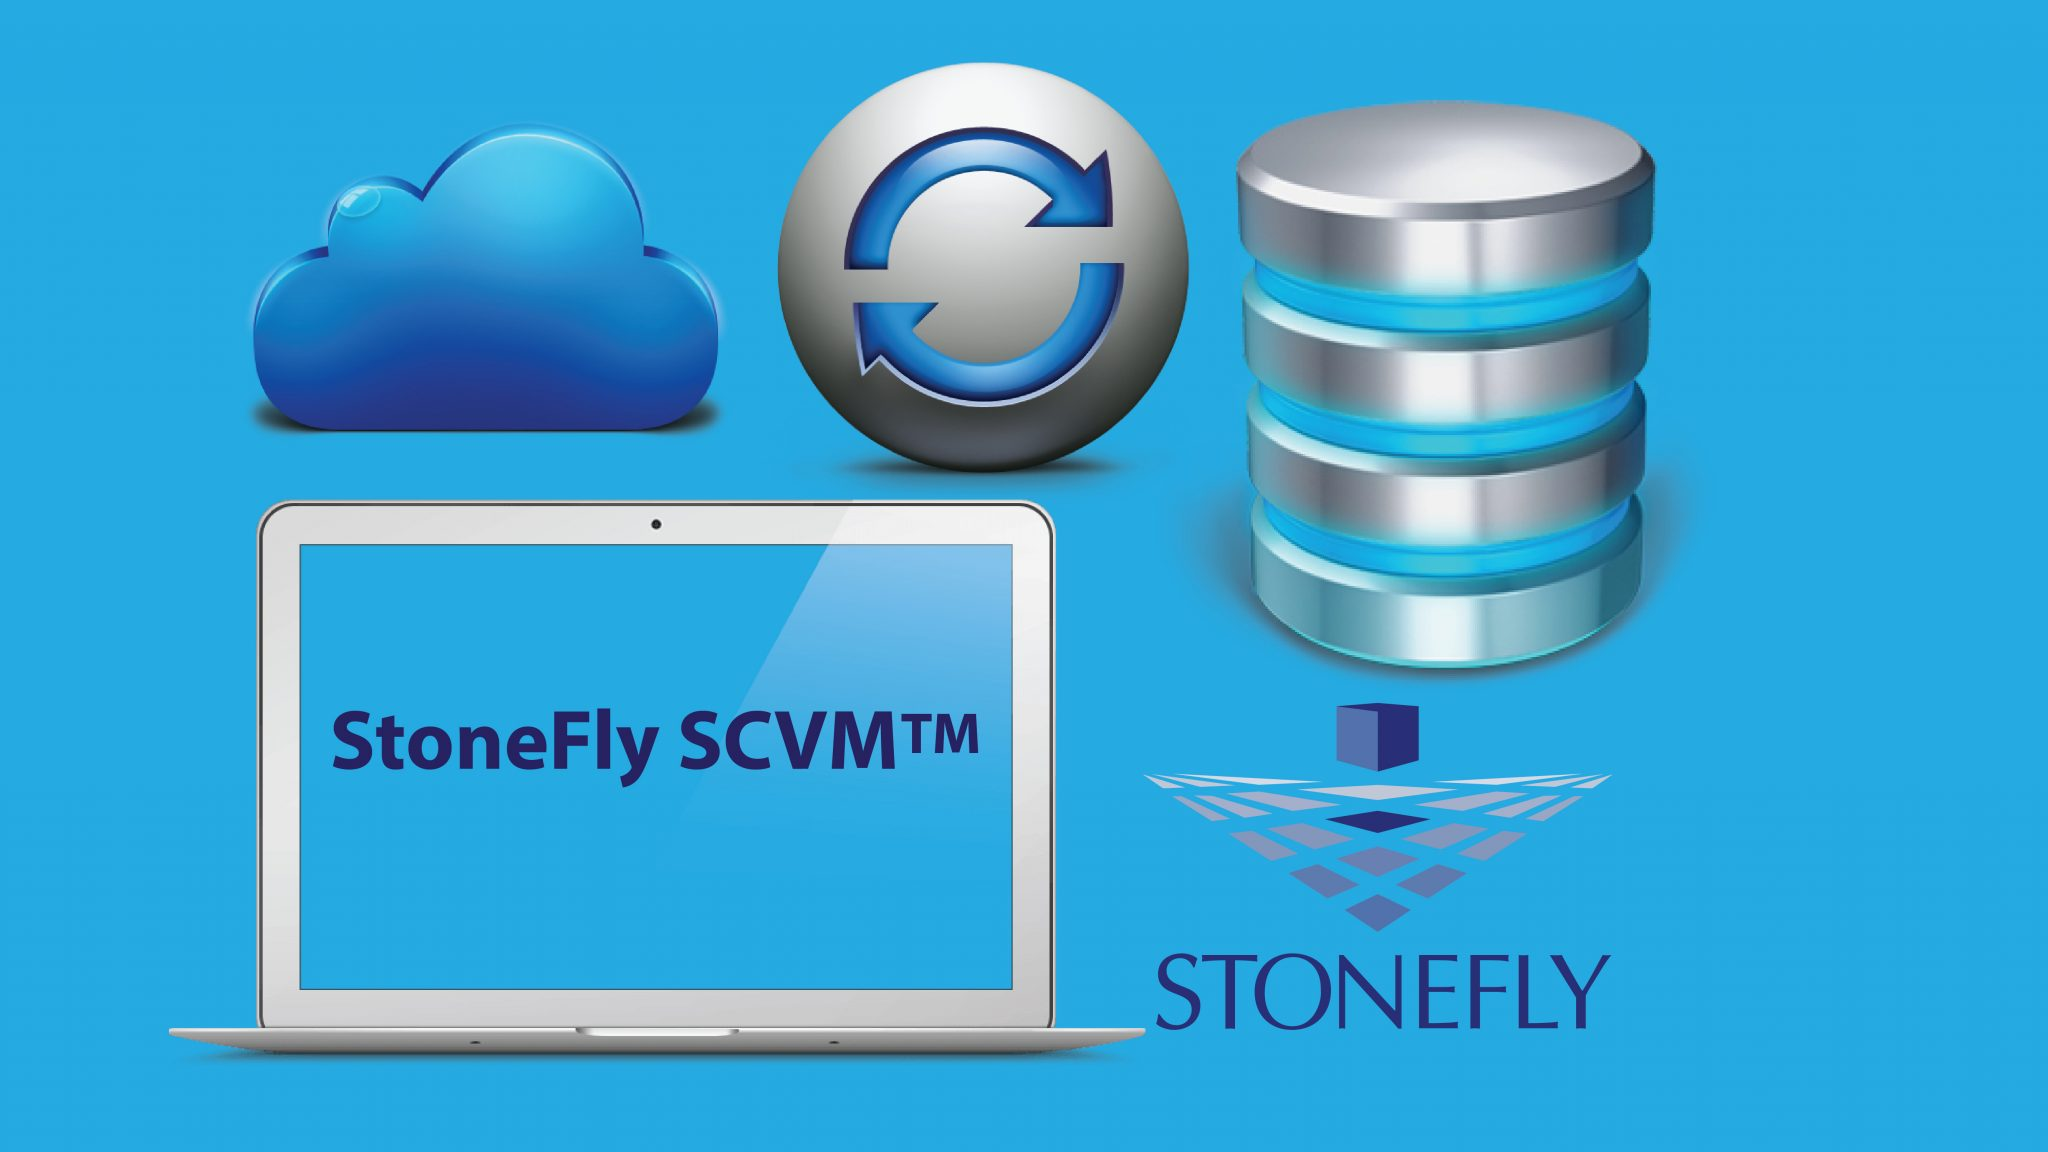 StoneFly SCVM™ ALL-IN-ONE cloud based solution for enterprises 4